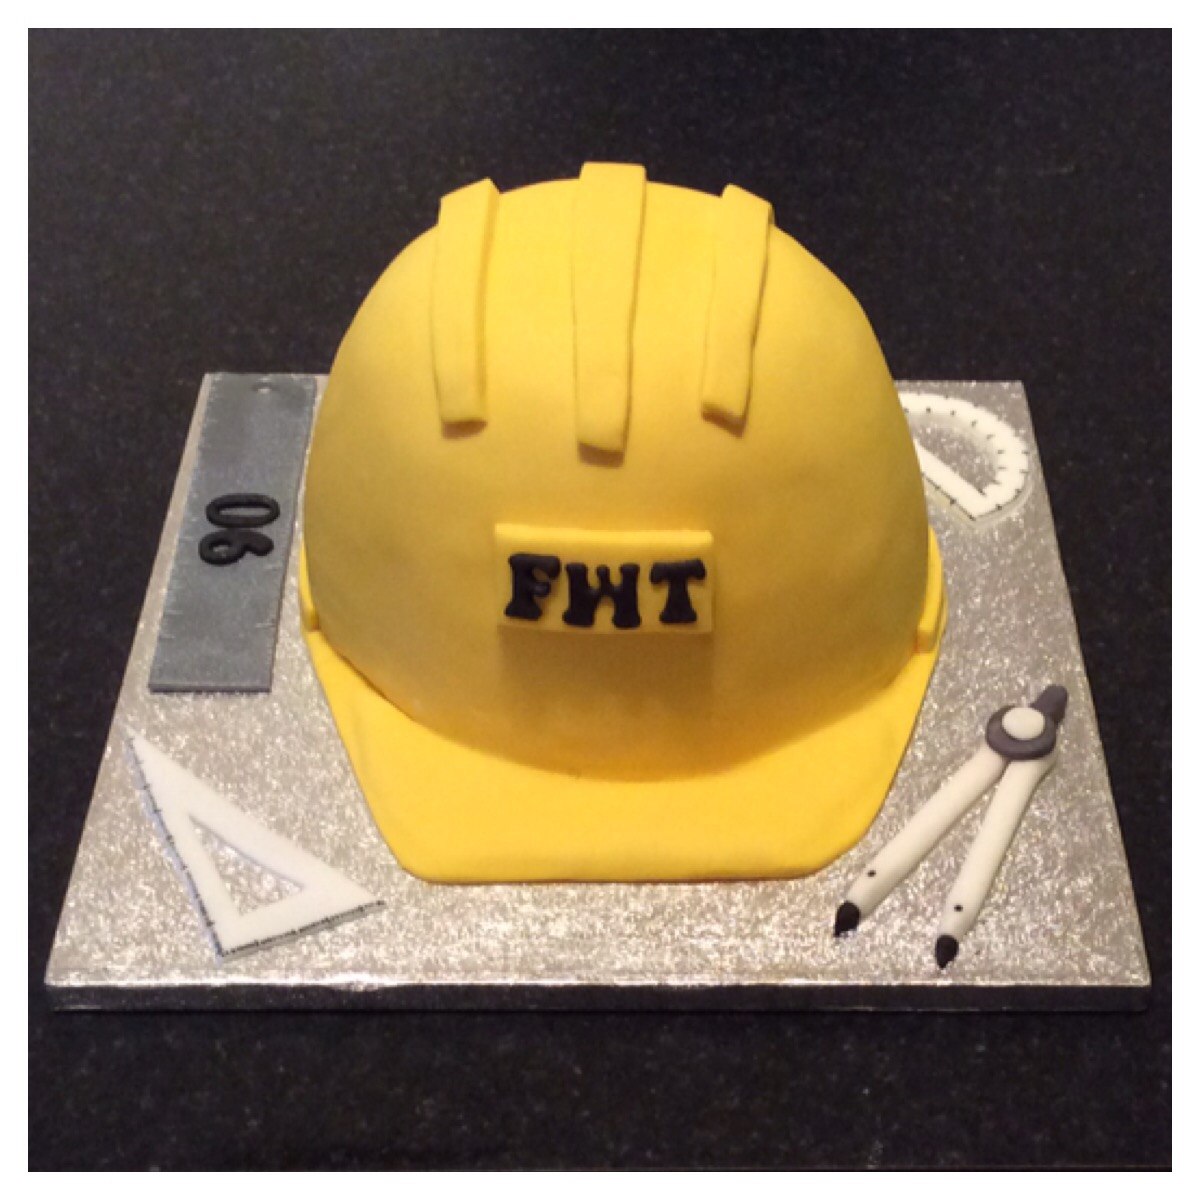 Hard Hat Cake by Lizzie